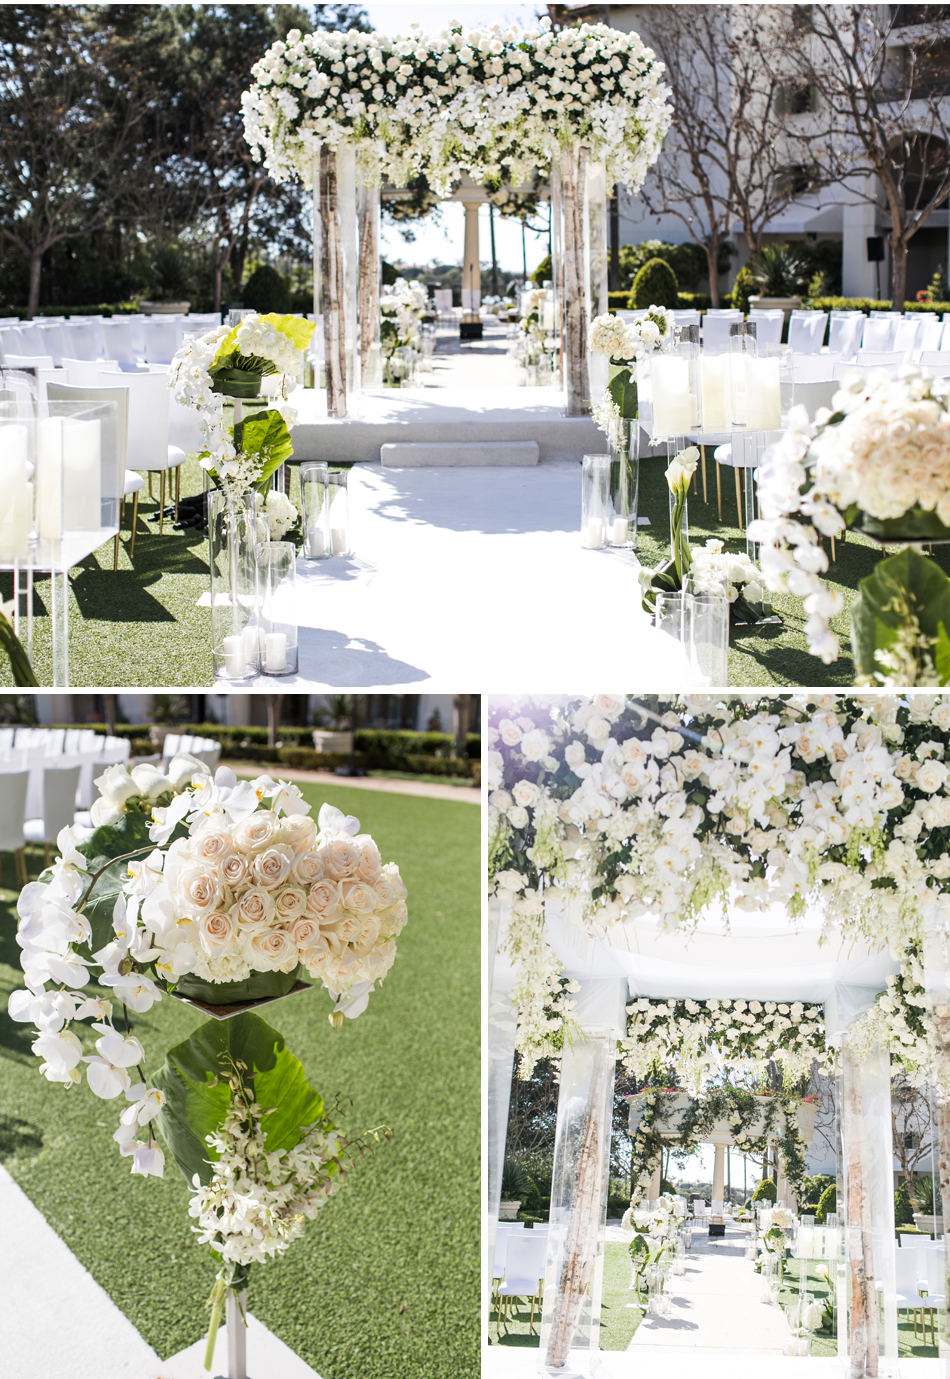 internationaleventcompany.com | International Event Company Los Angeles Wedding Planner and Designer | Weddings at The Monarch Beach Resort | Luxury Event Planners in Southern California _ (6).jpg